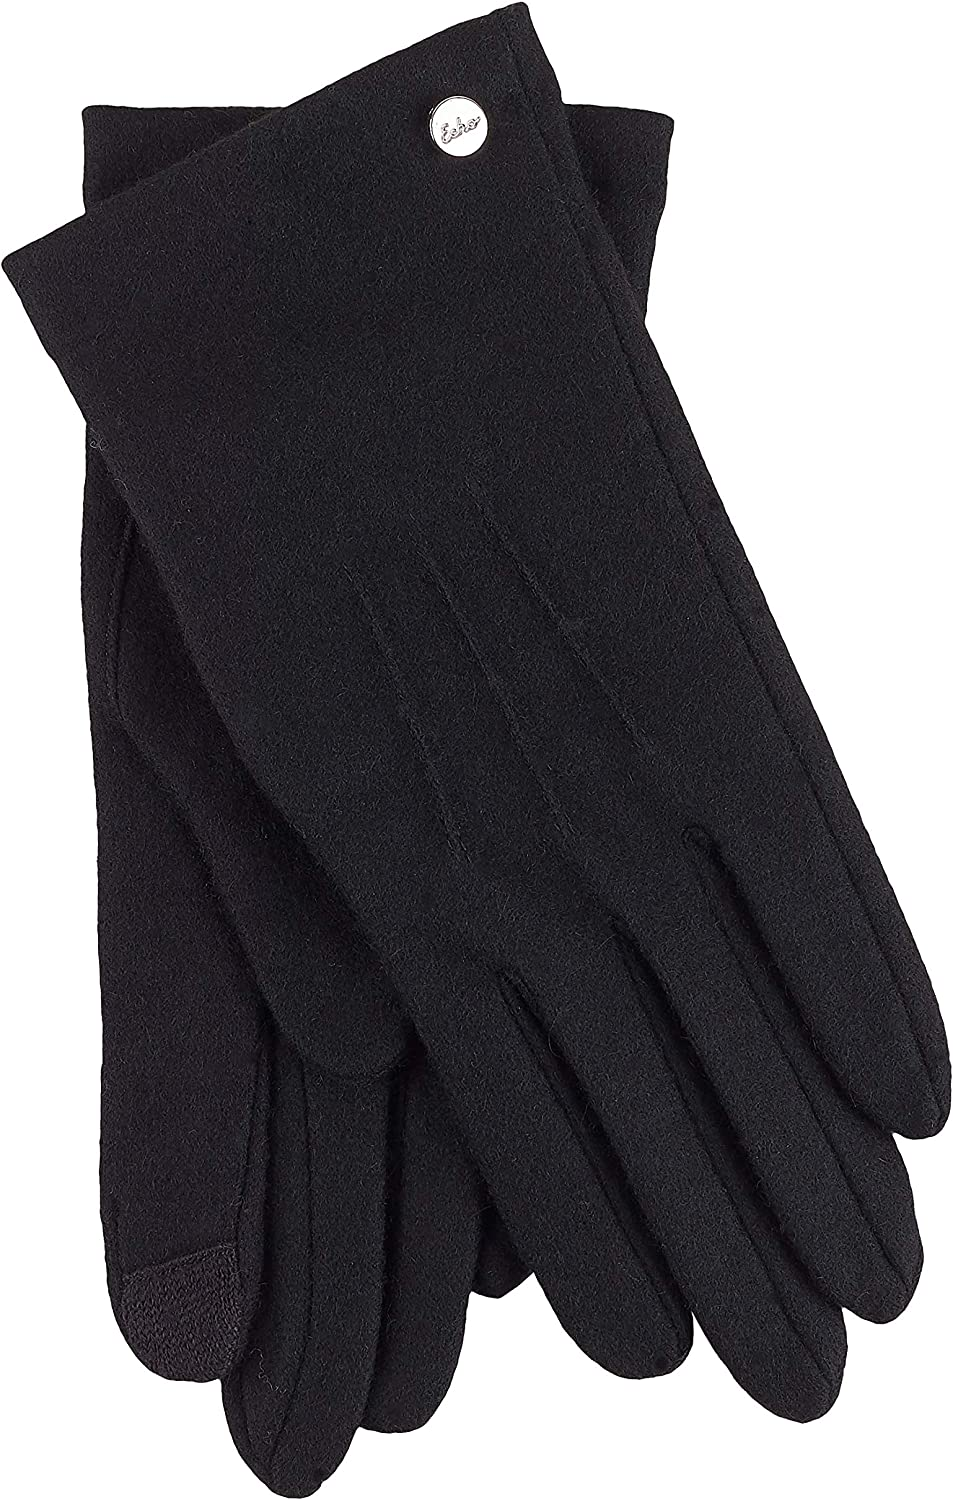 Echo New York Classic Touch Gloves - Water Repellent Black XL